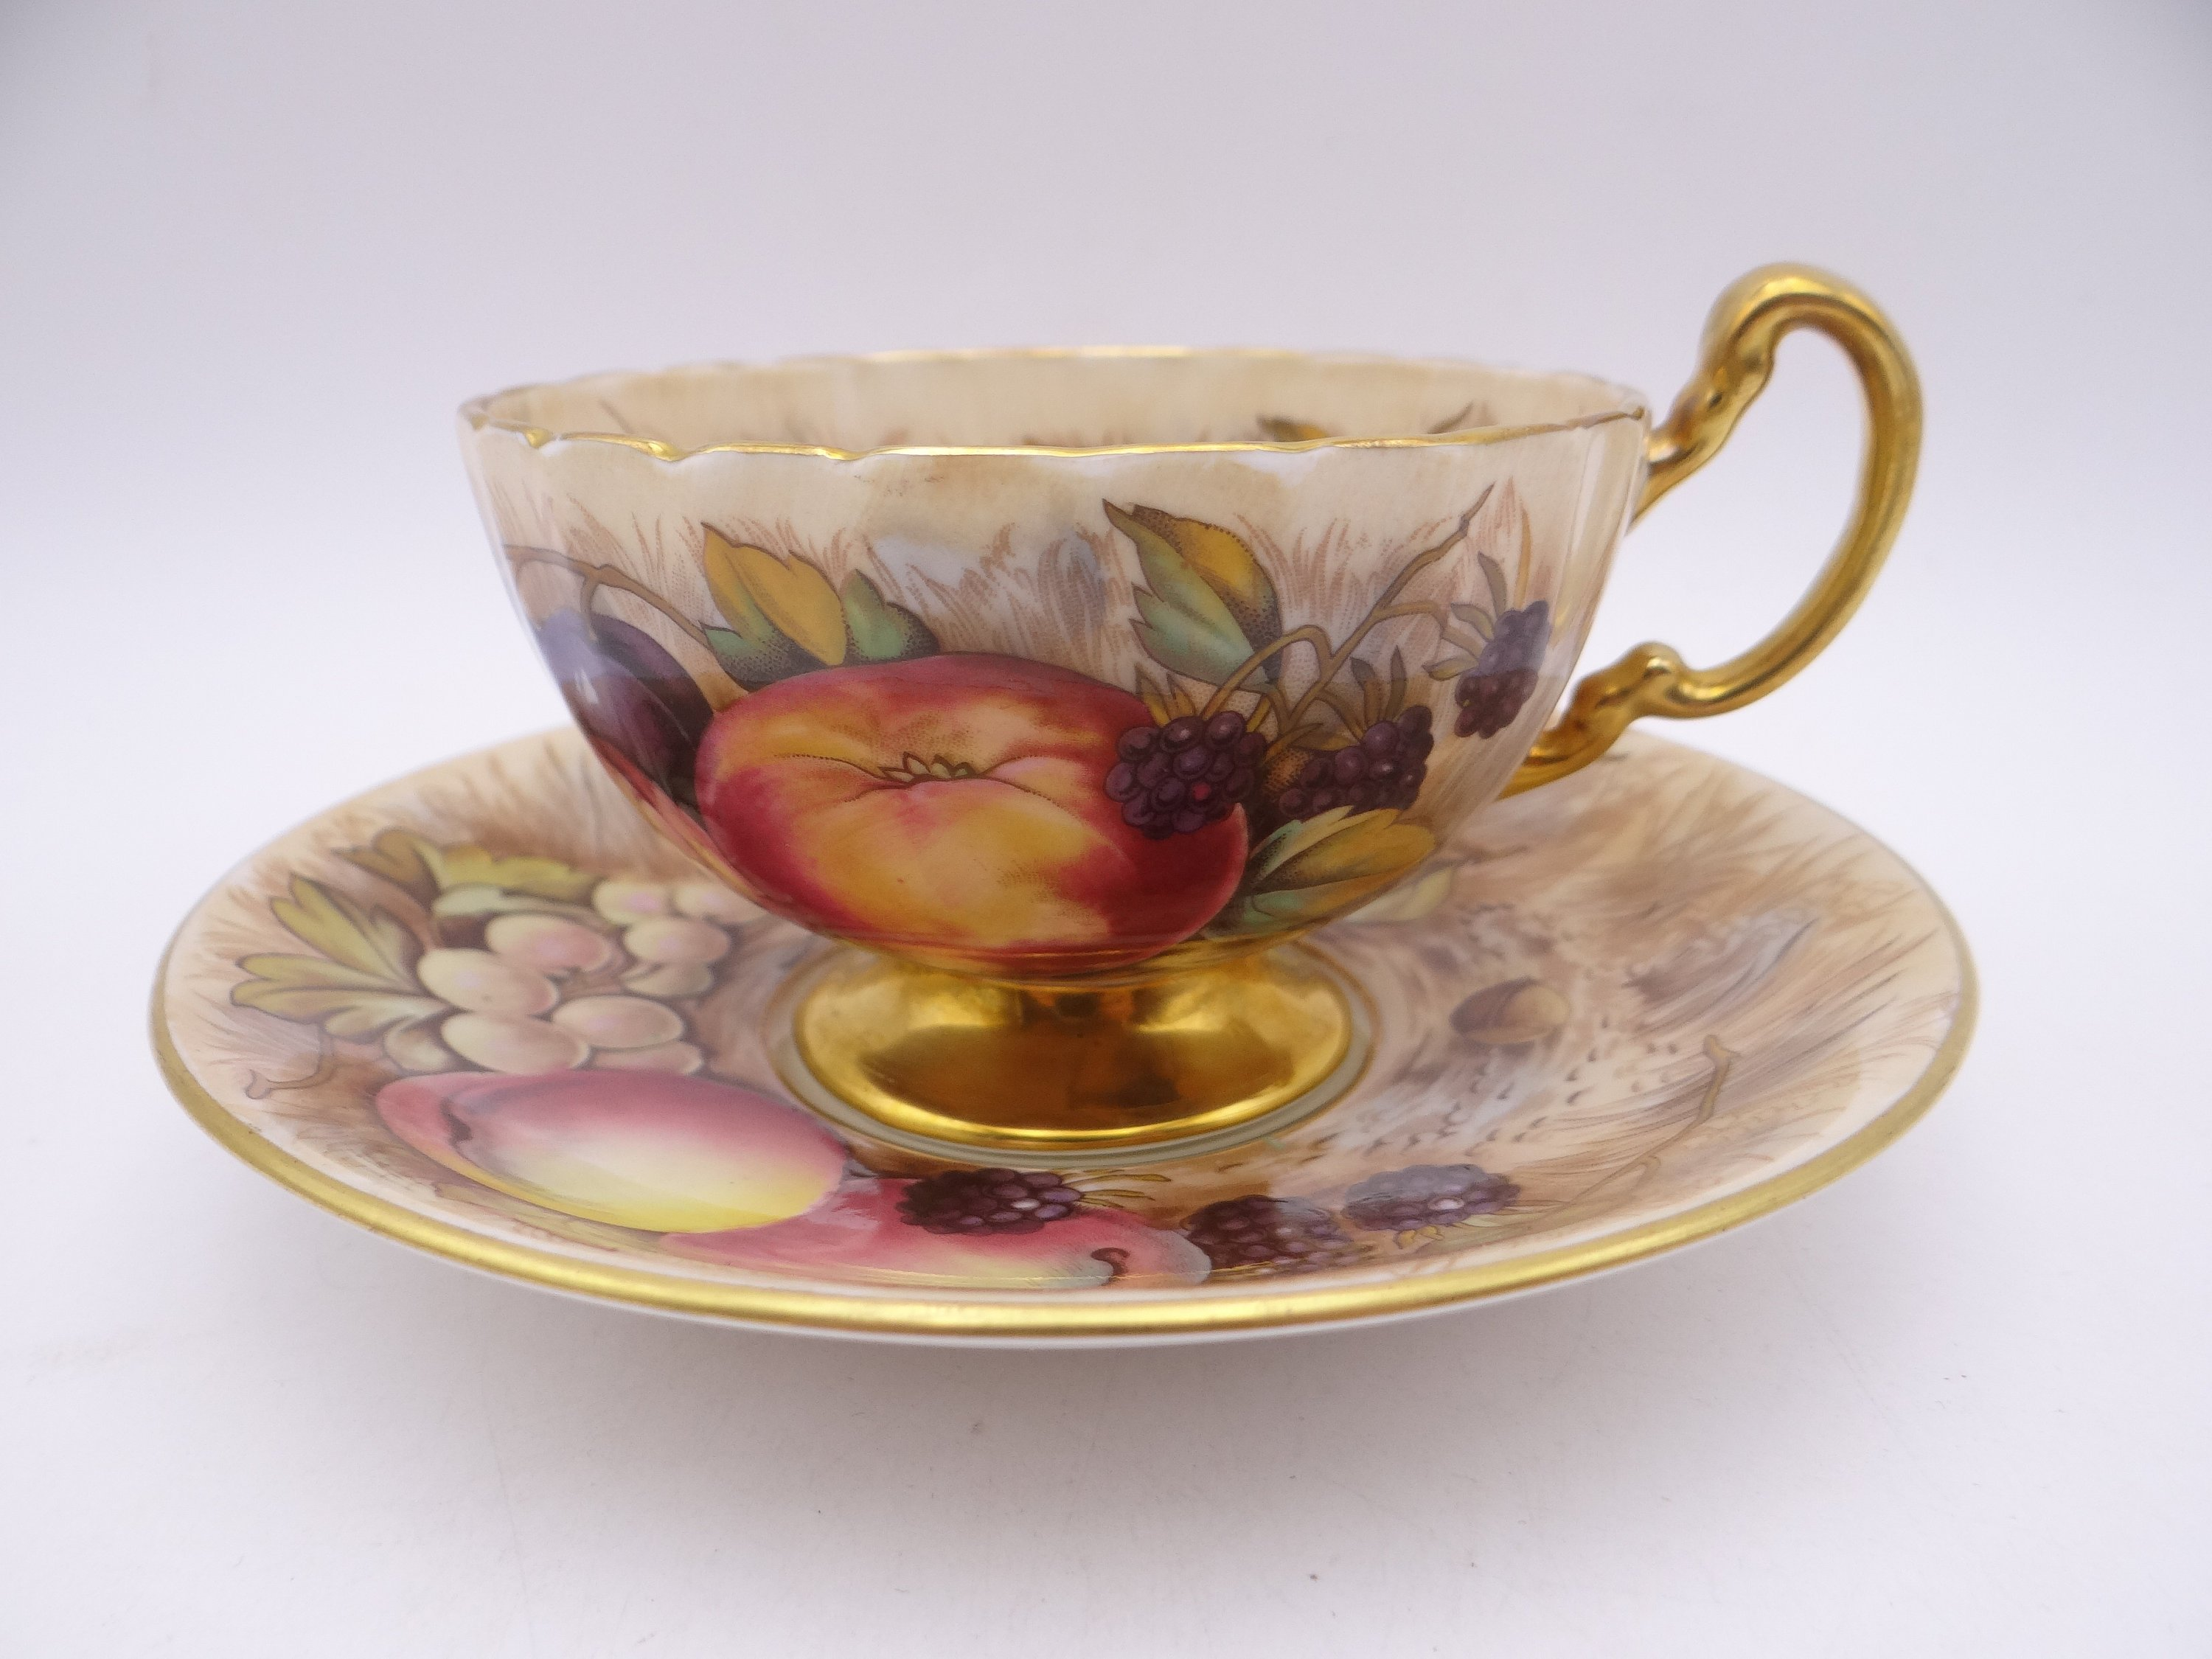 Mint Condition Aynsley English Bone China Teacup